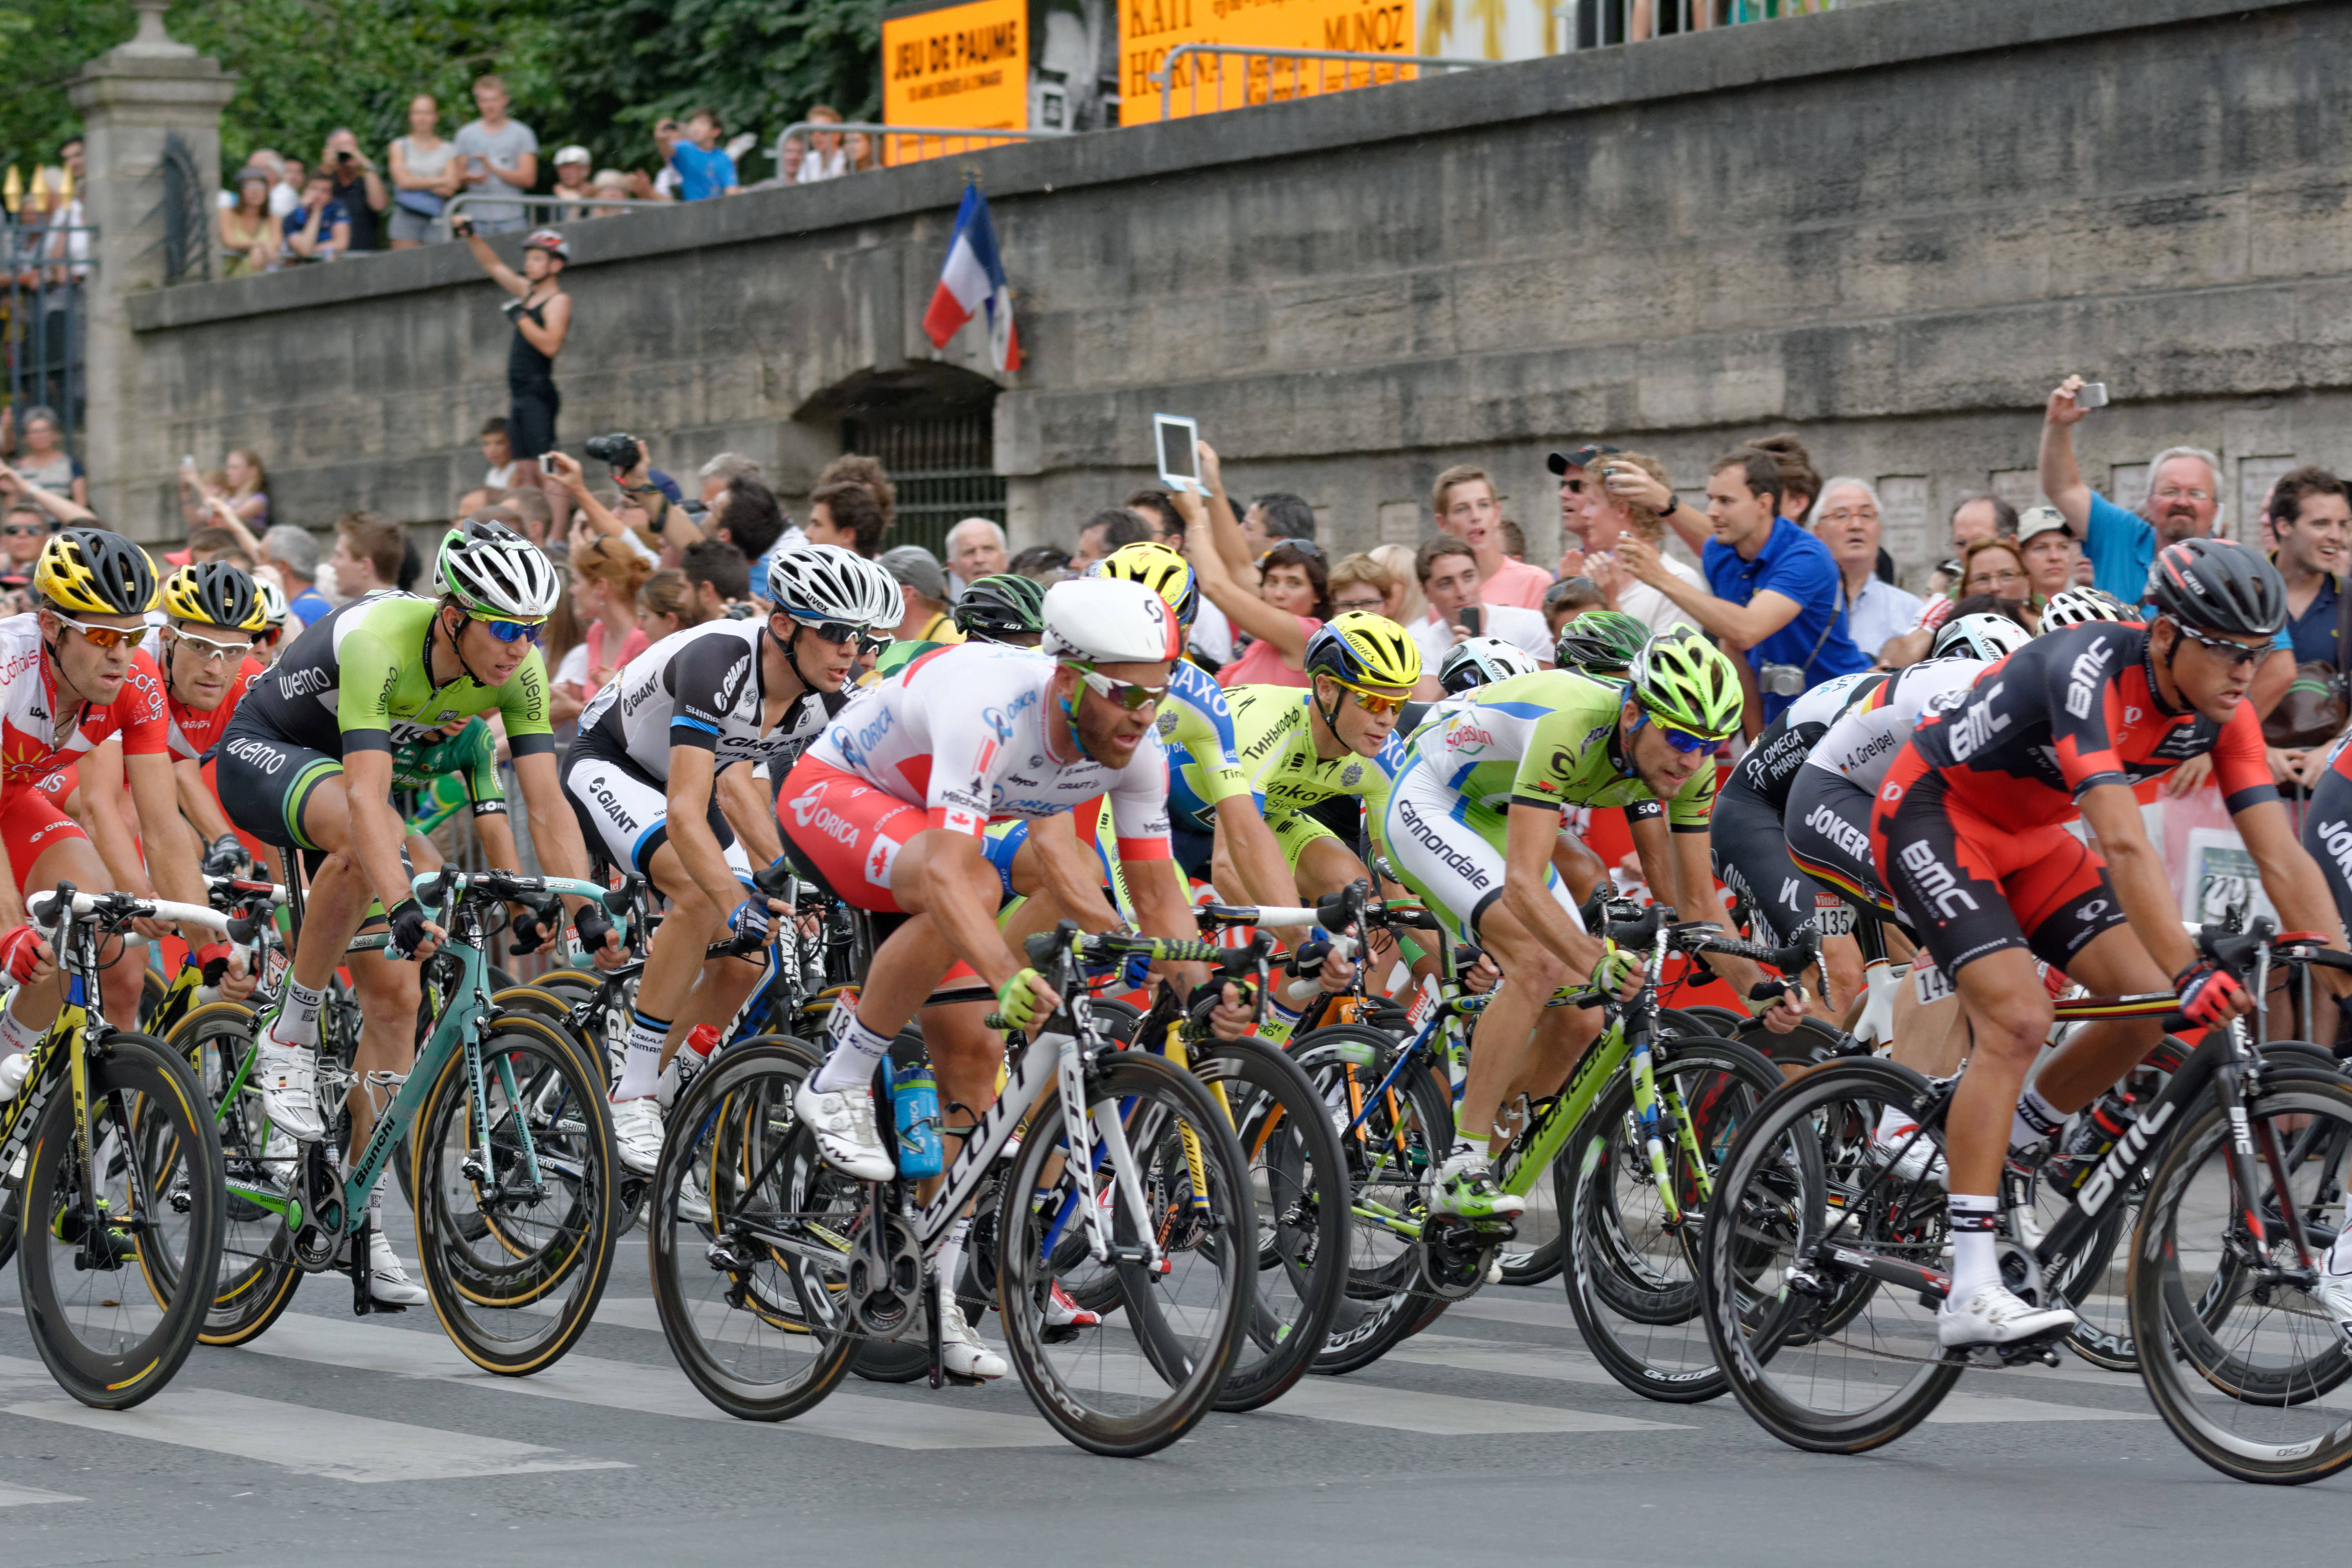 Bicycle race galleries 38